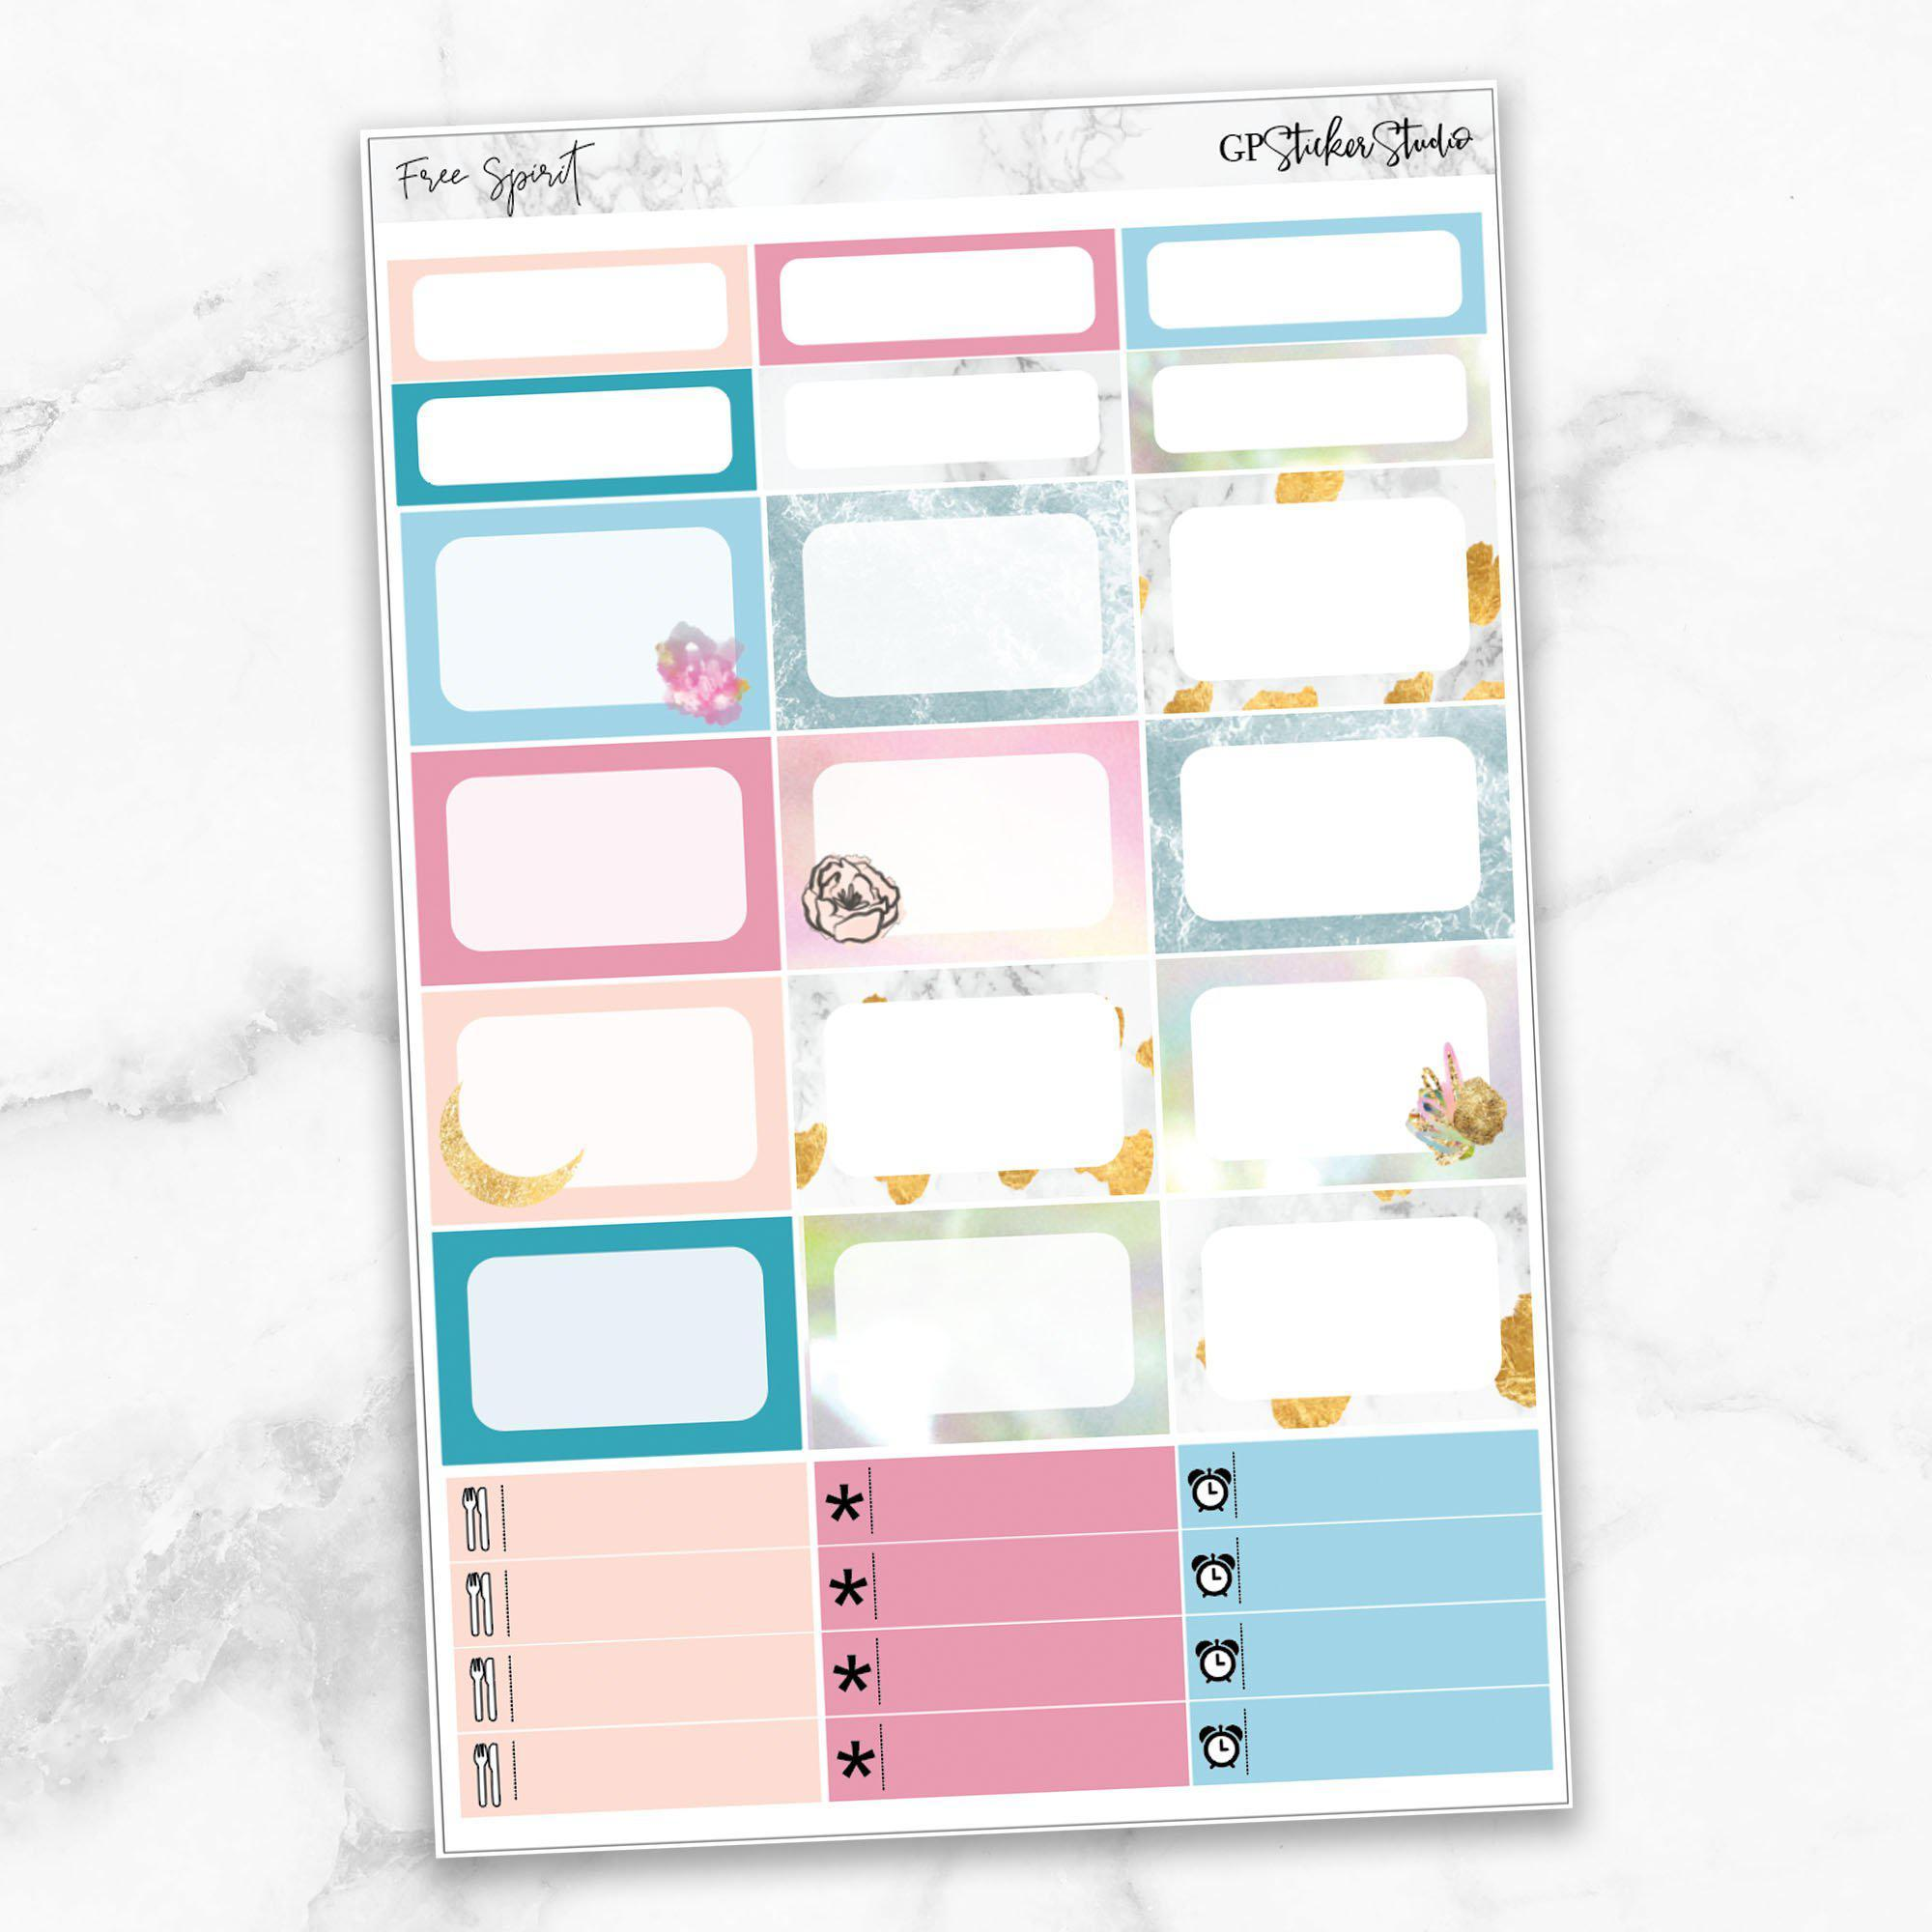 FREE SPIRIT Half Boxes Planner Stickers-The GP Studio